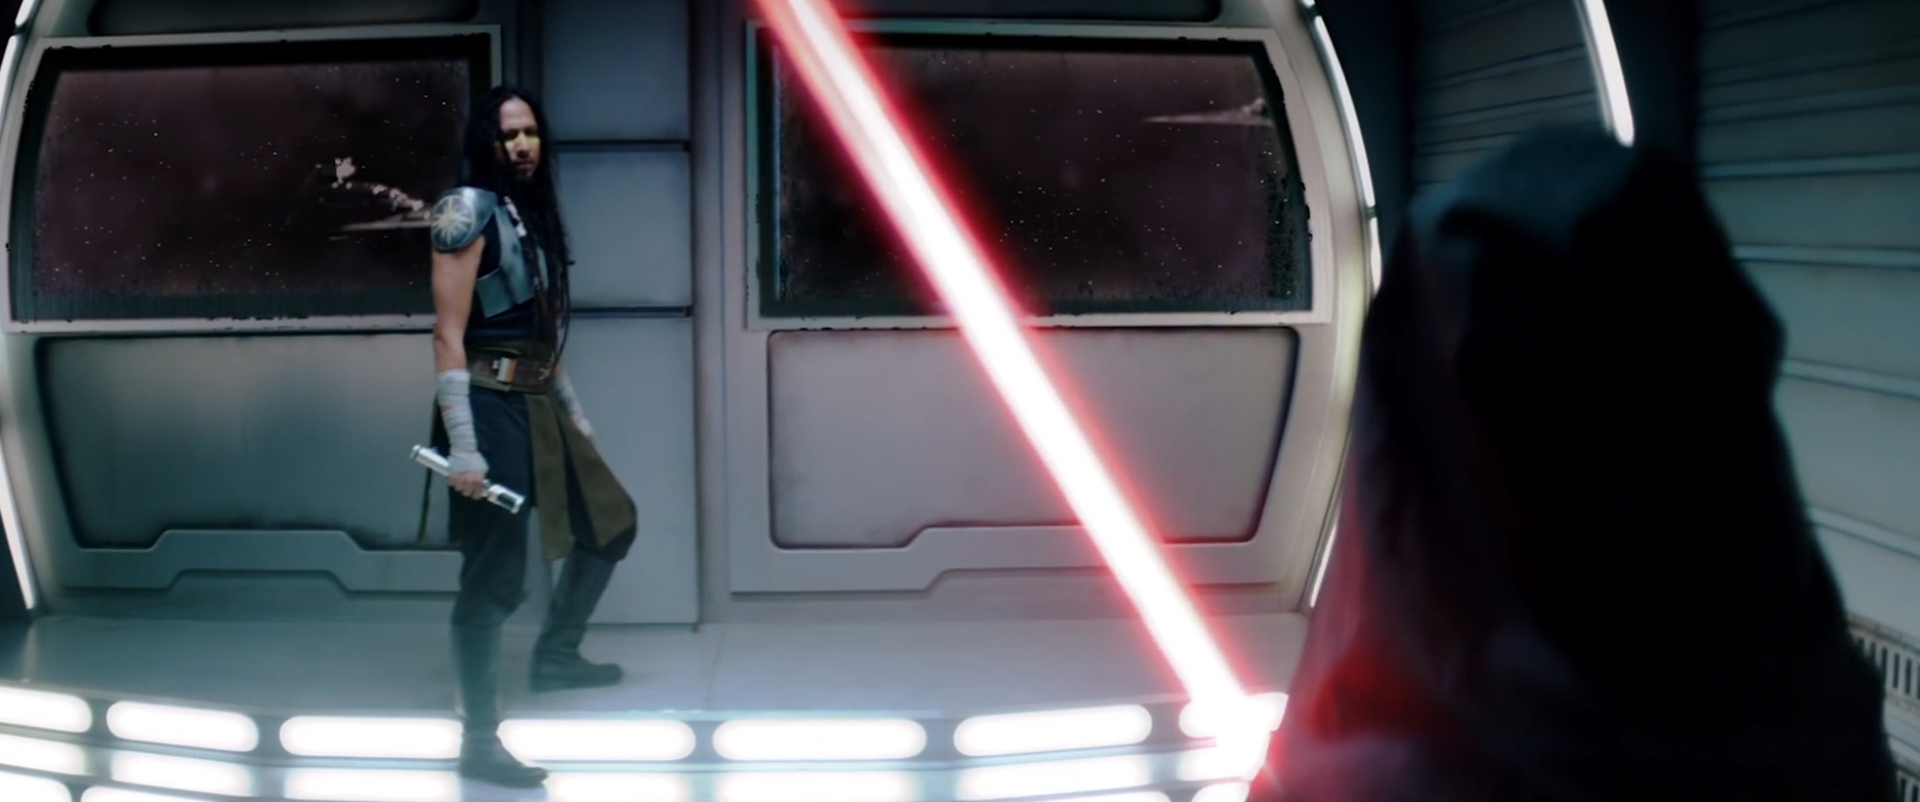 Star Wars on Netflix Trailer- Fury of Maul (April Fools')_No Bars (0-00-08-16).png